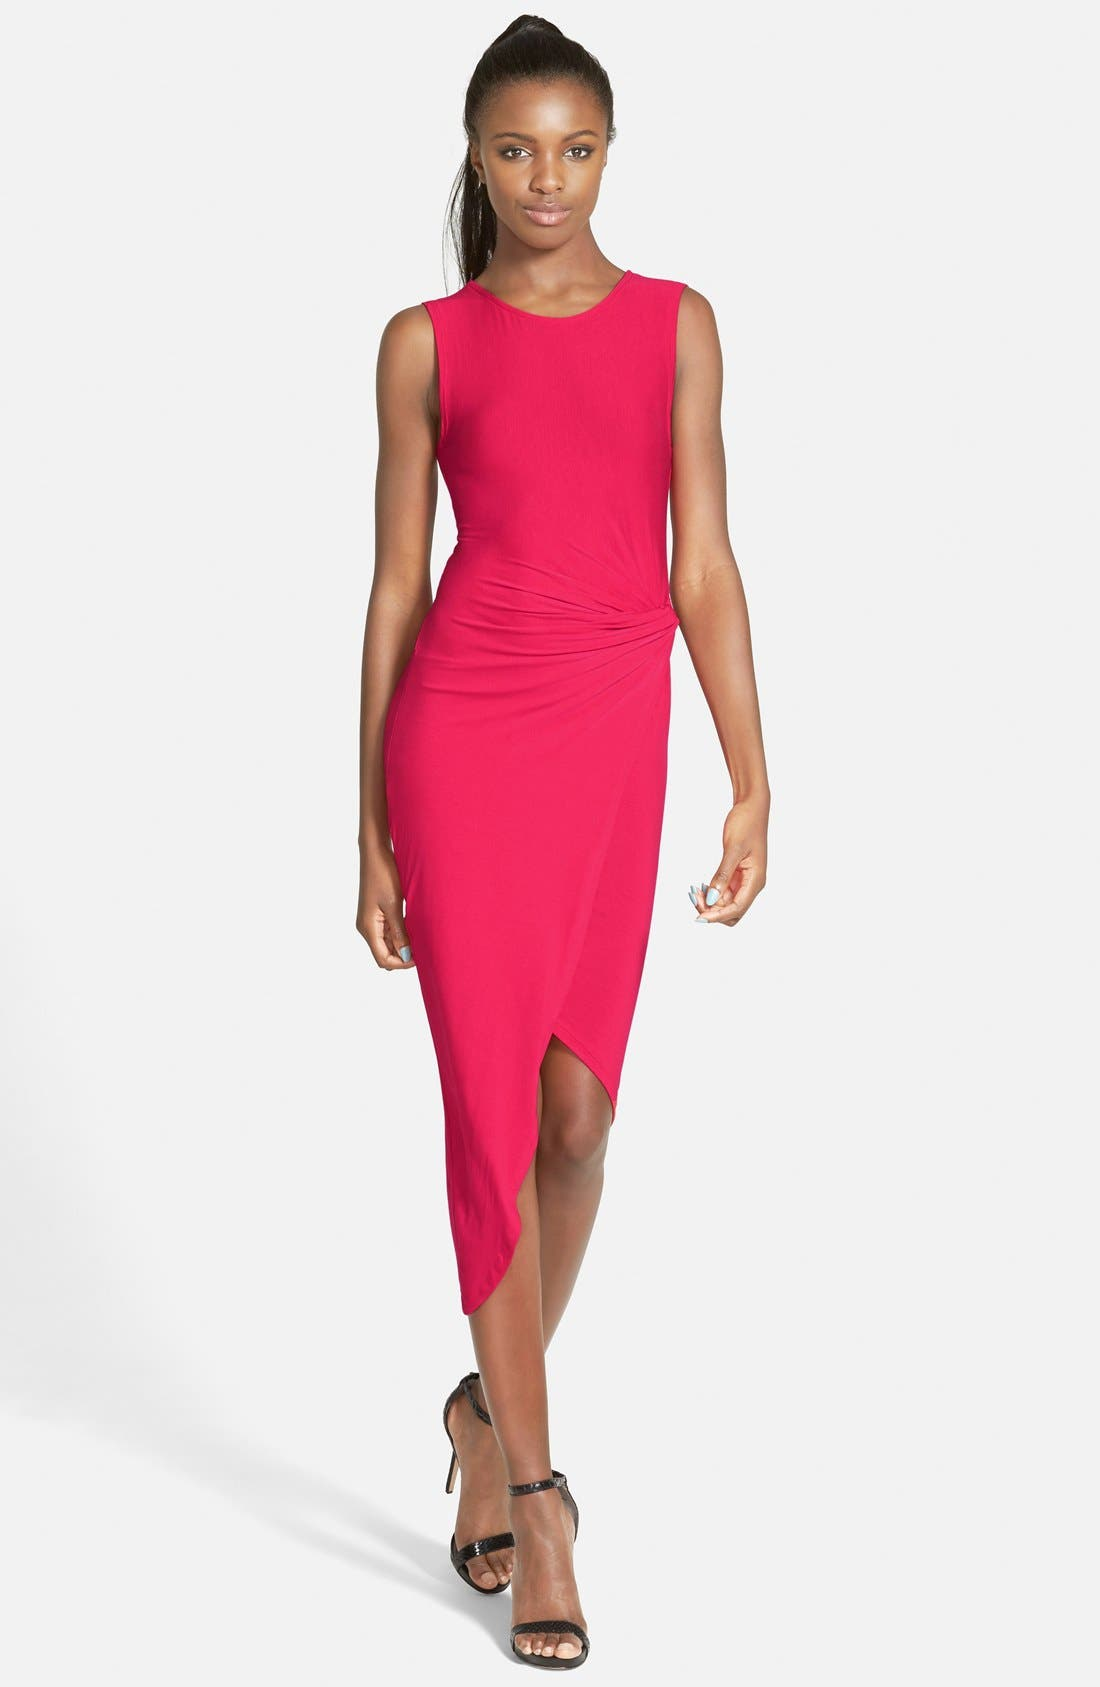 Alternate Image 1 Selected - ASTR Knotted Body-Con Dress